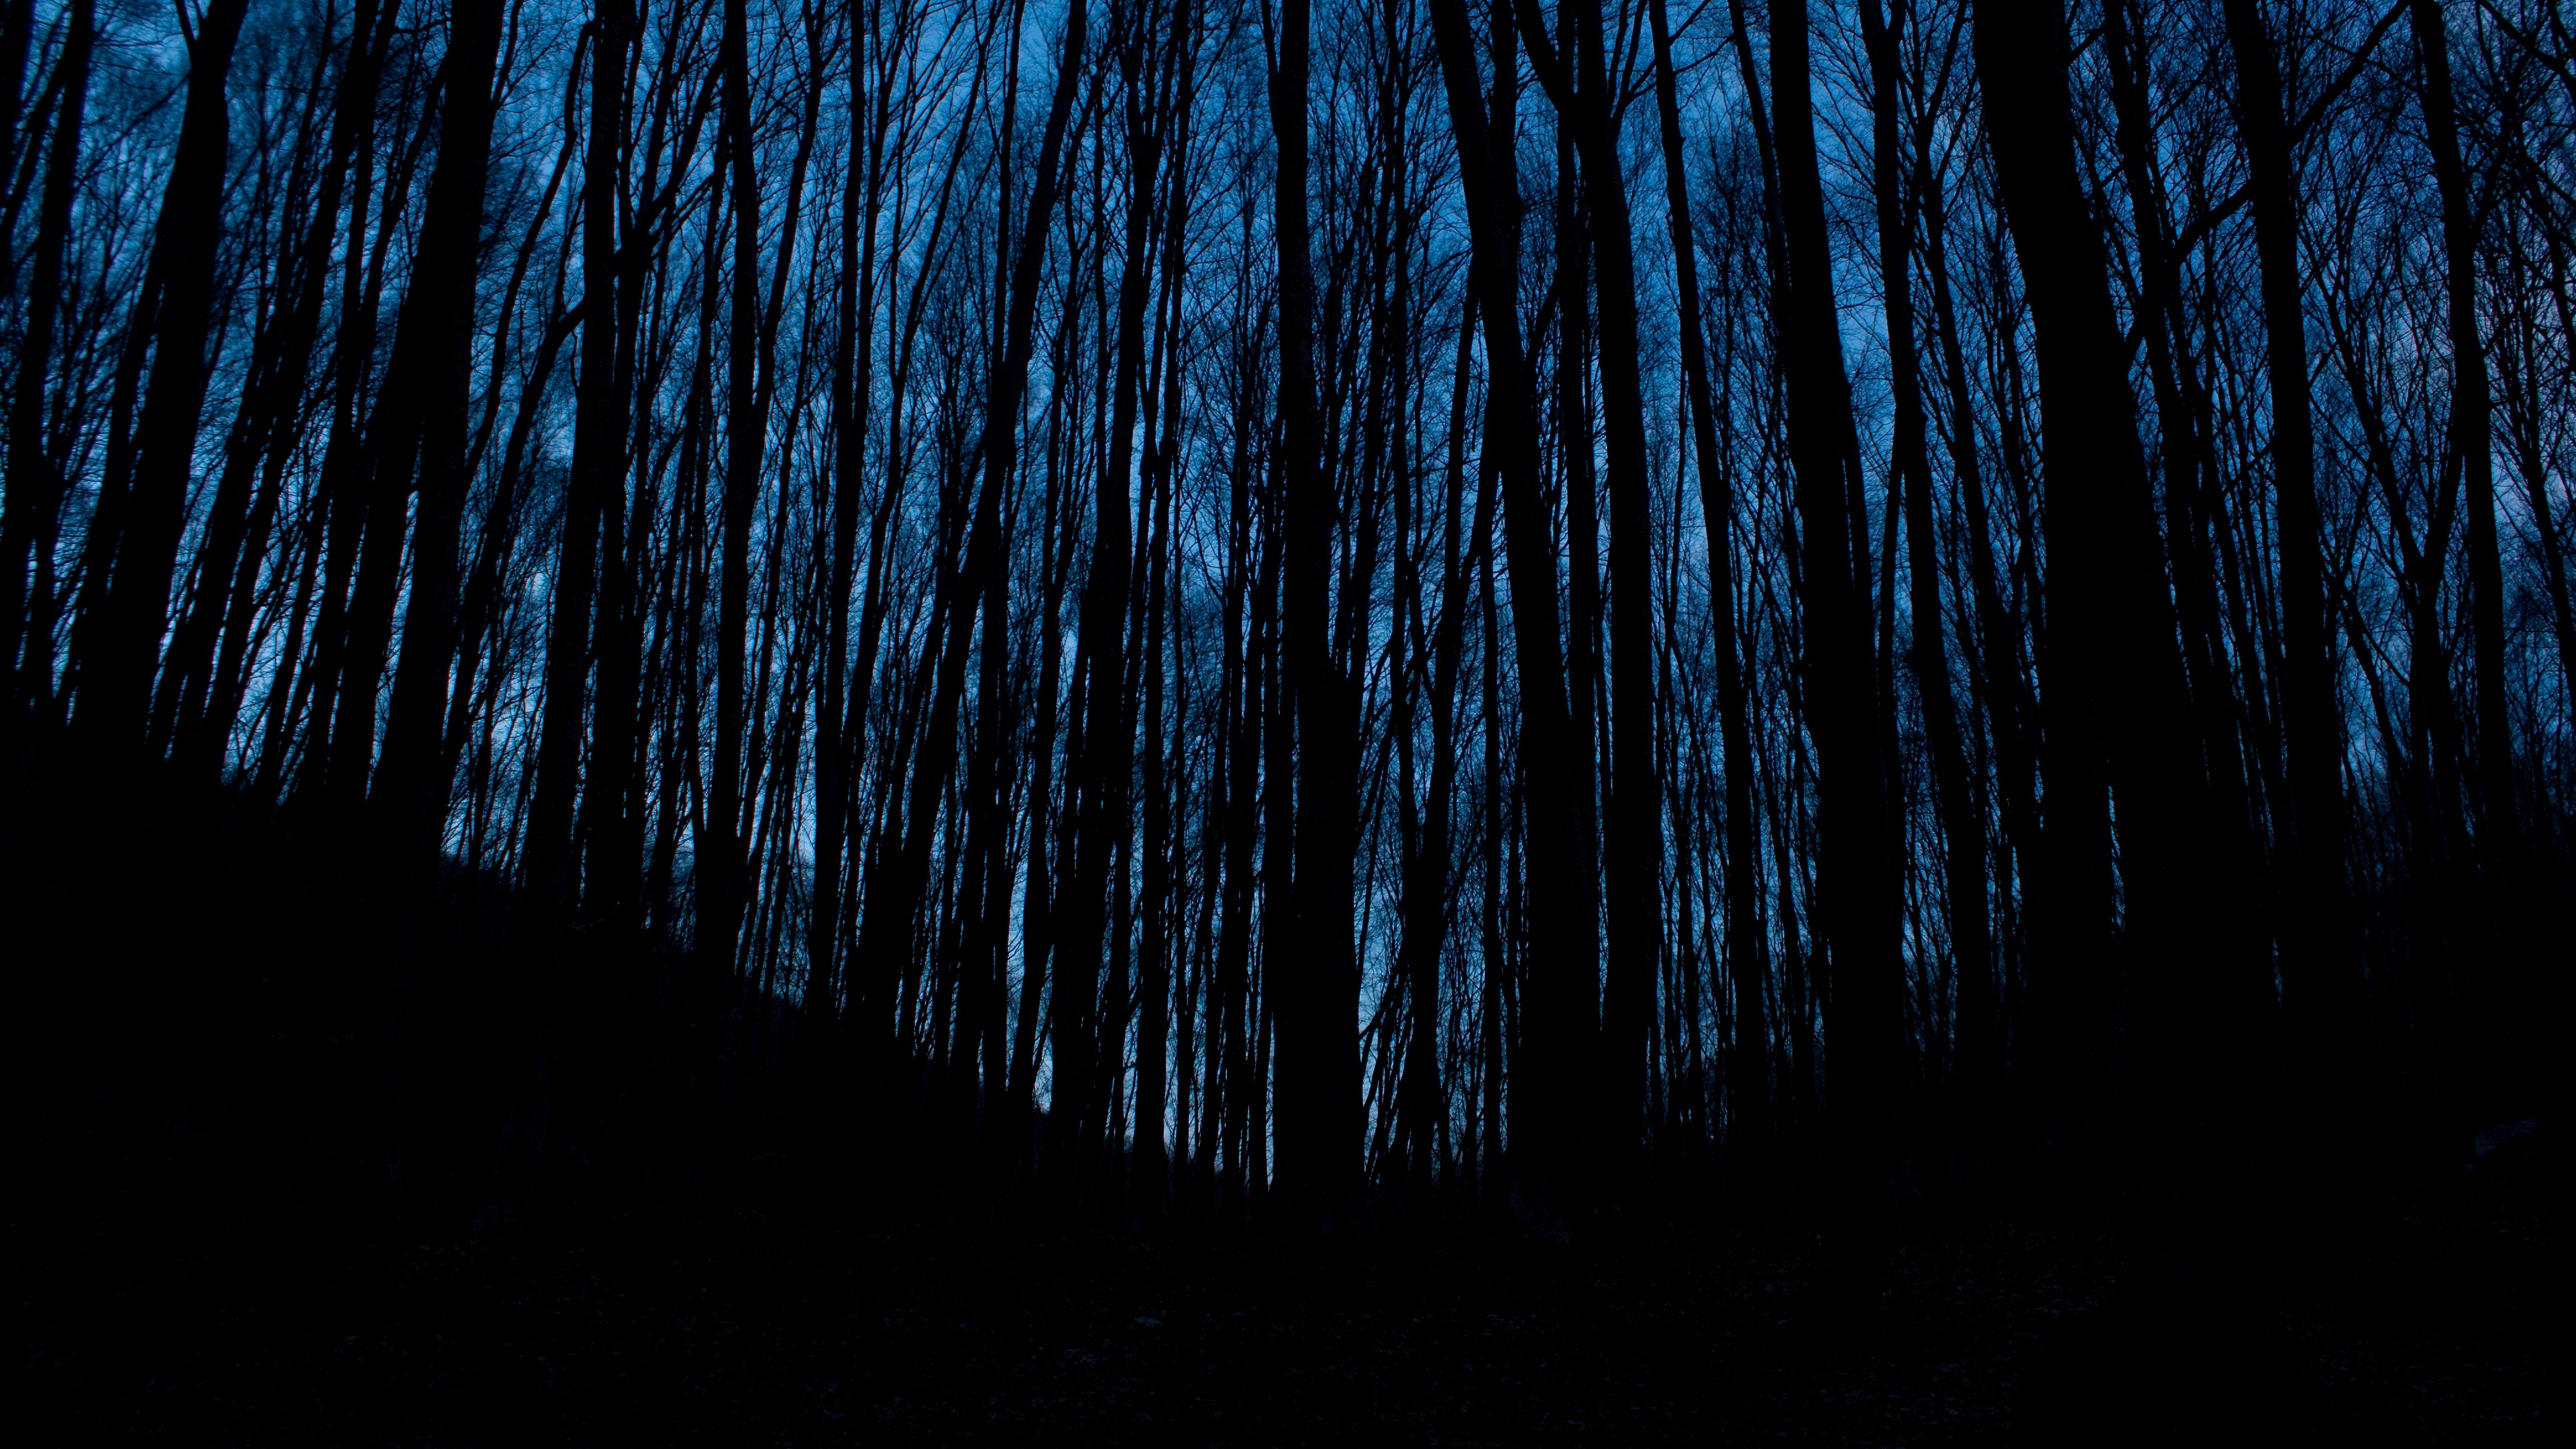 trees forest dark night 4k 1540576076 - trees, forest, dark, night 4k - Trees, Forest, Dark